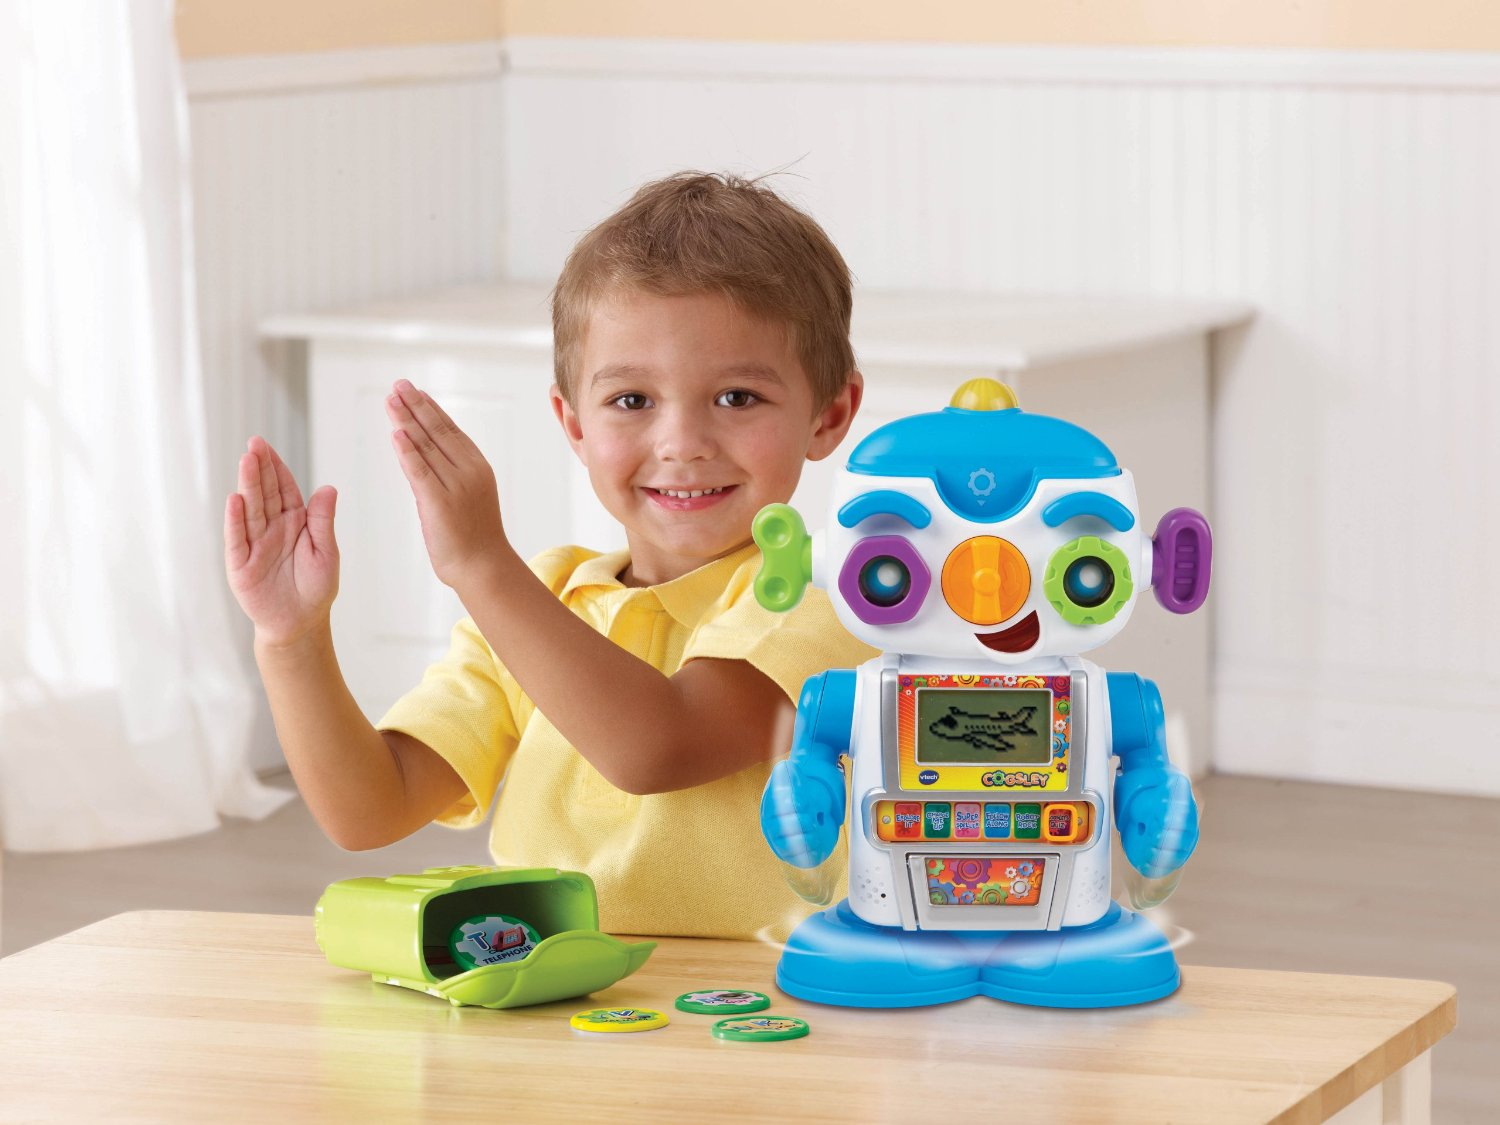 Used Toys For Toddlers : Best selling interactive toys for toddlers